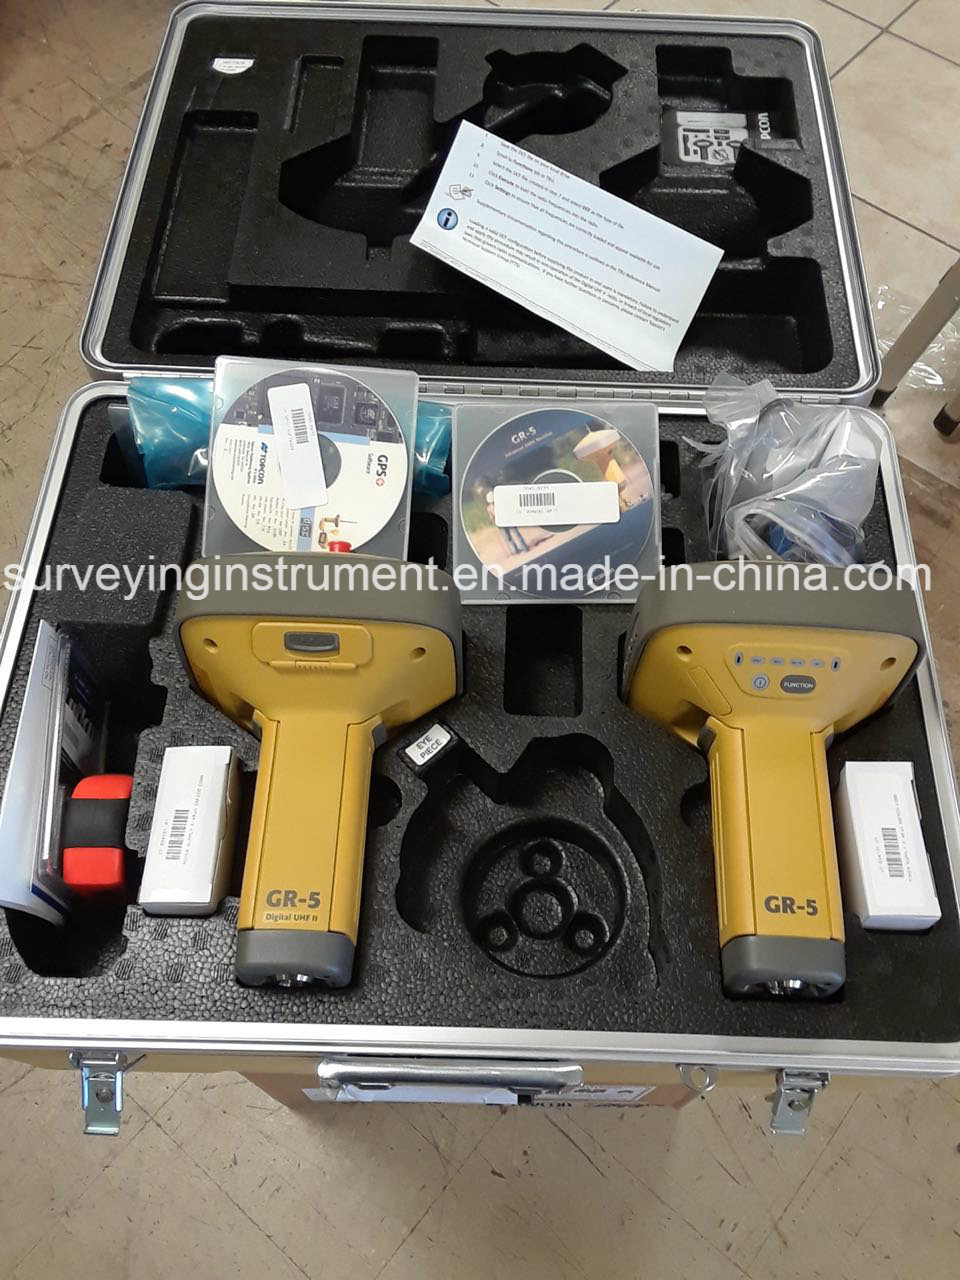 [Hot Item] Topcon Gr-5 Gnss Rtk System with FC5000 Field Computer